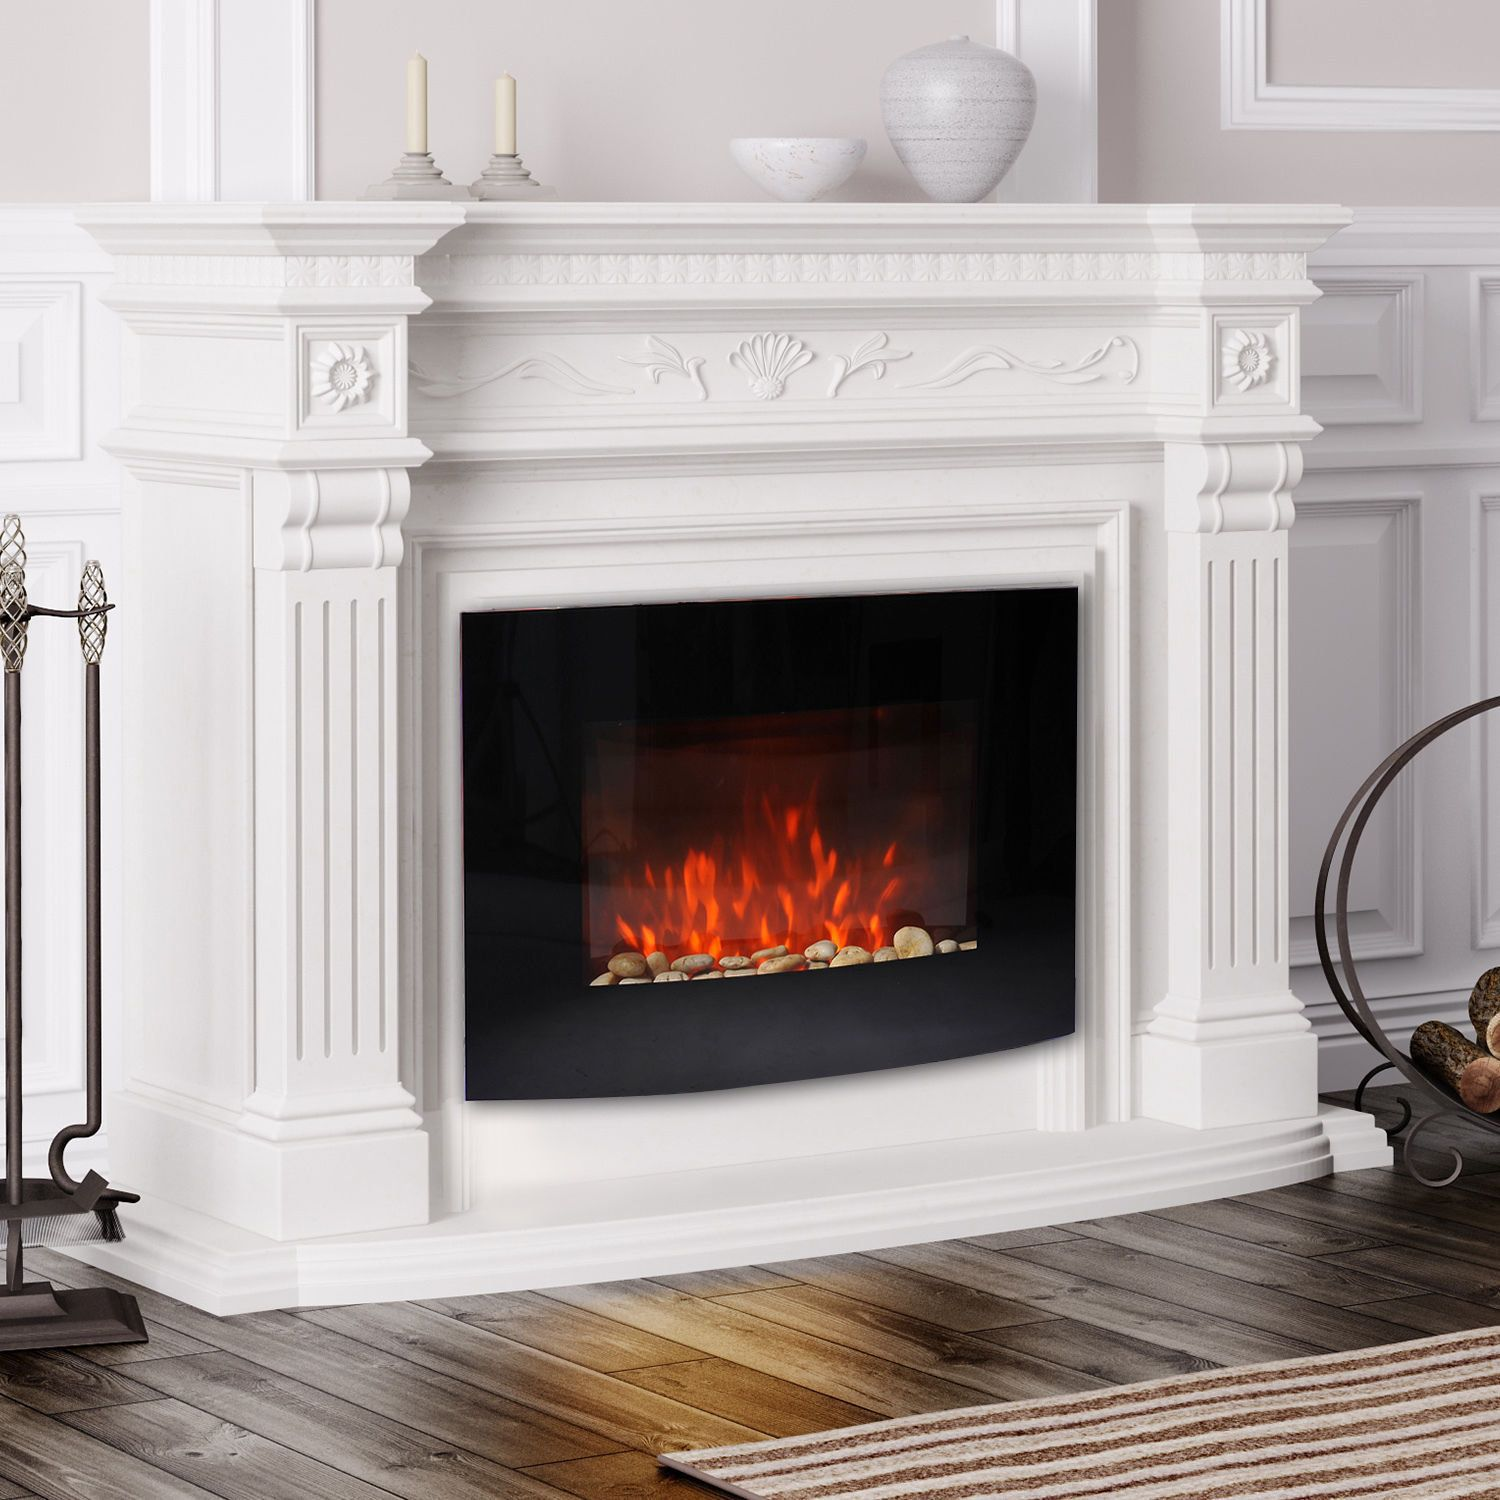 Artificial Fireplaces Fireplace Inserts Installation Beautiful Fireplace Ideas